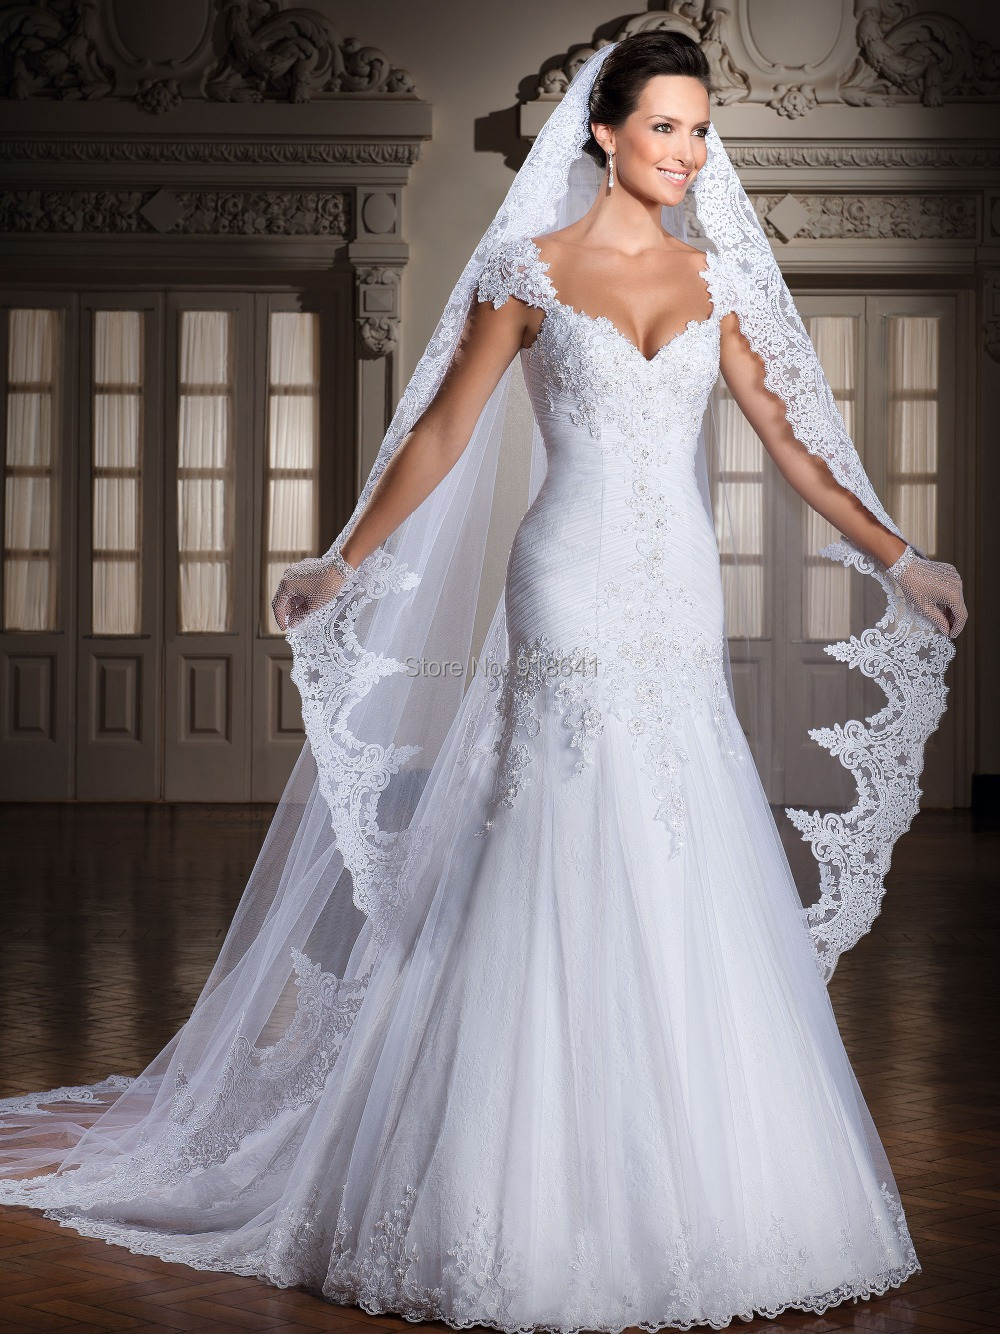 buy elegant 2015 mermaid wedding dress v neck cap sleeves lace bridal